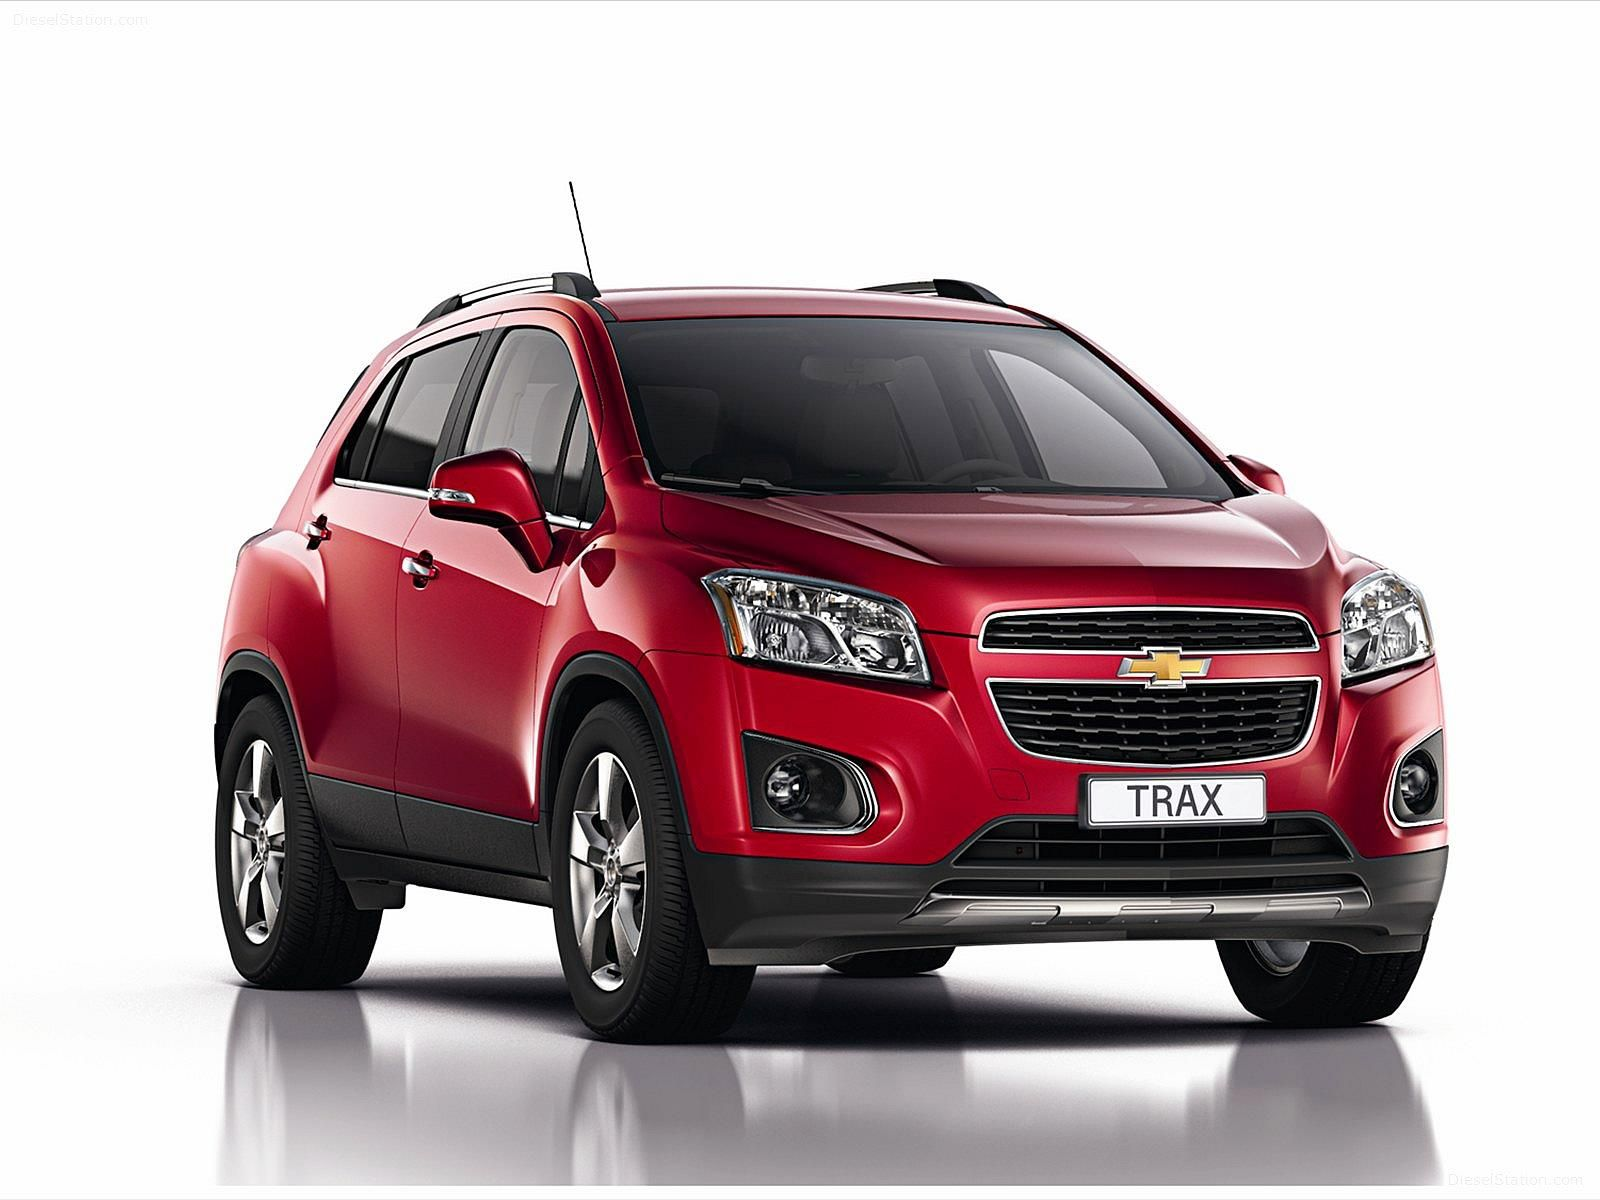 Chevrolet Plans To Launch The Compact Suv Trax In India By 2014